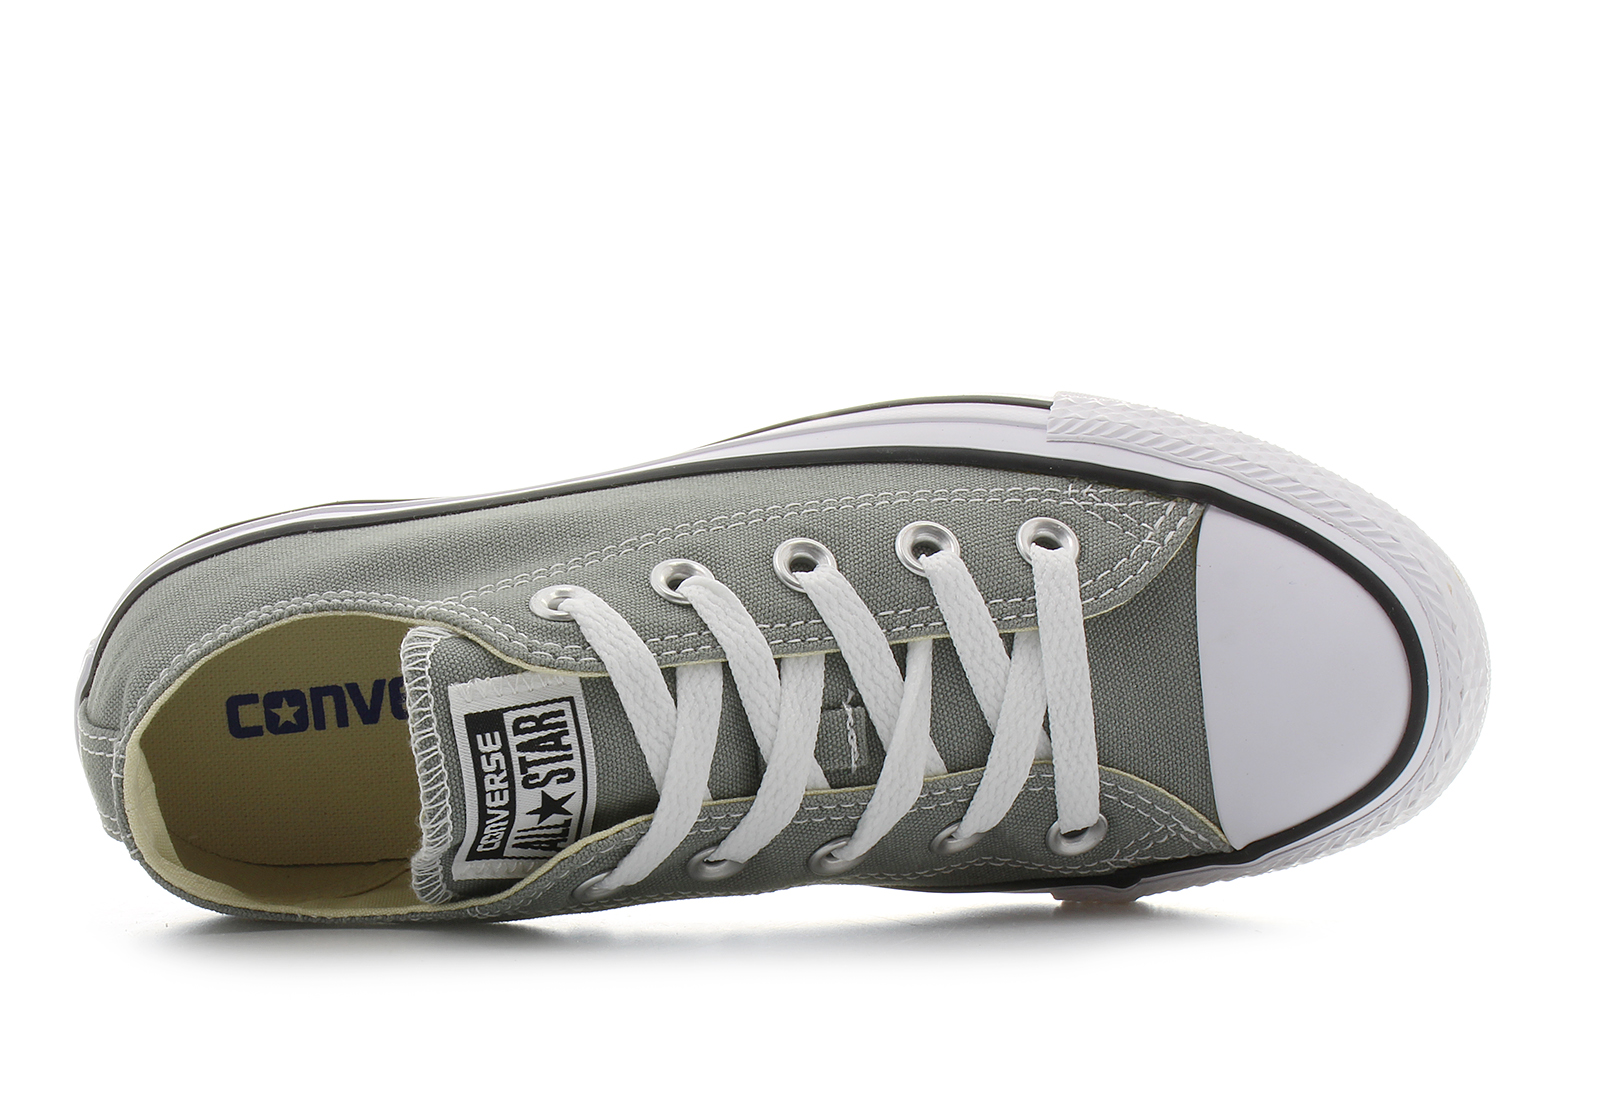 Converse Sneakers - Chuck Taylor All Star Seasonal Ox - 155575C ... 31e441ca22e